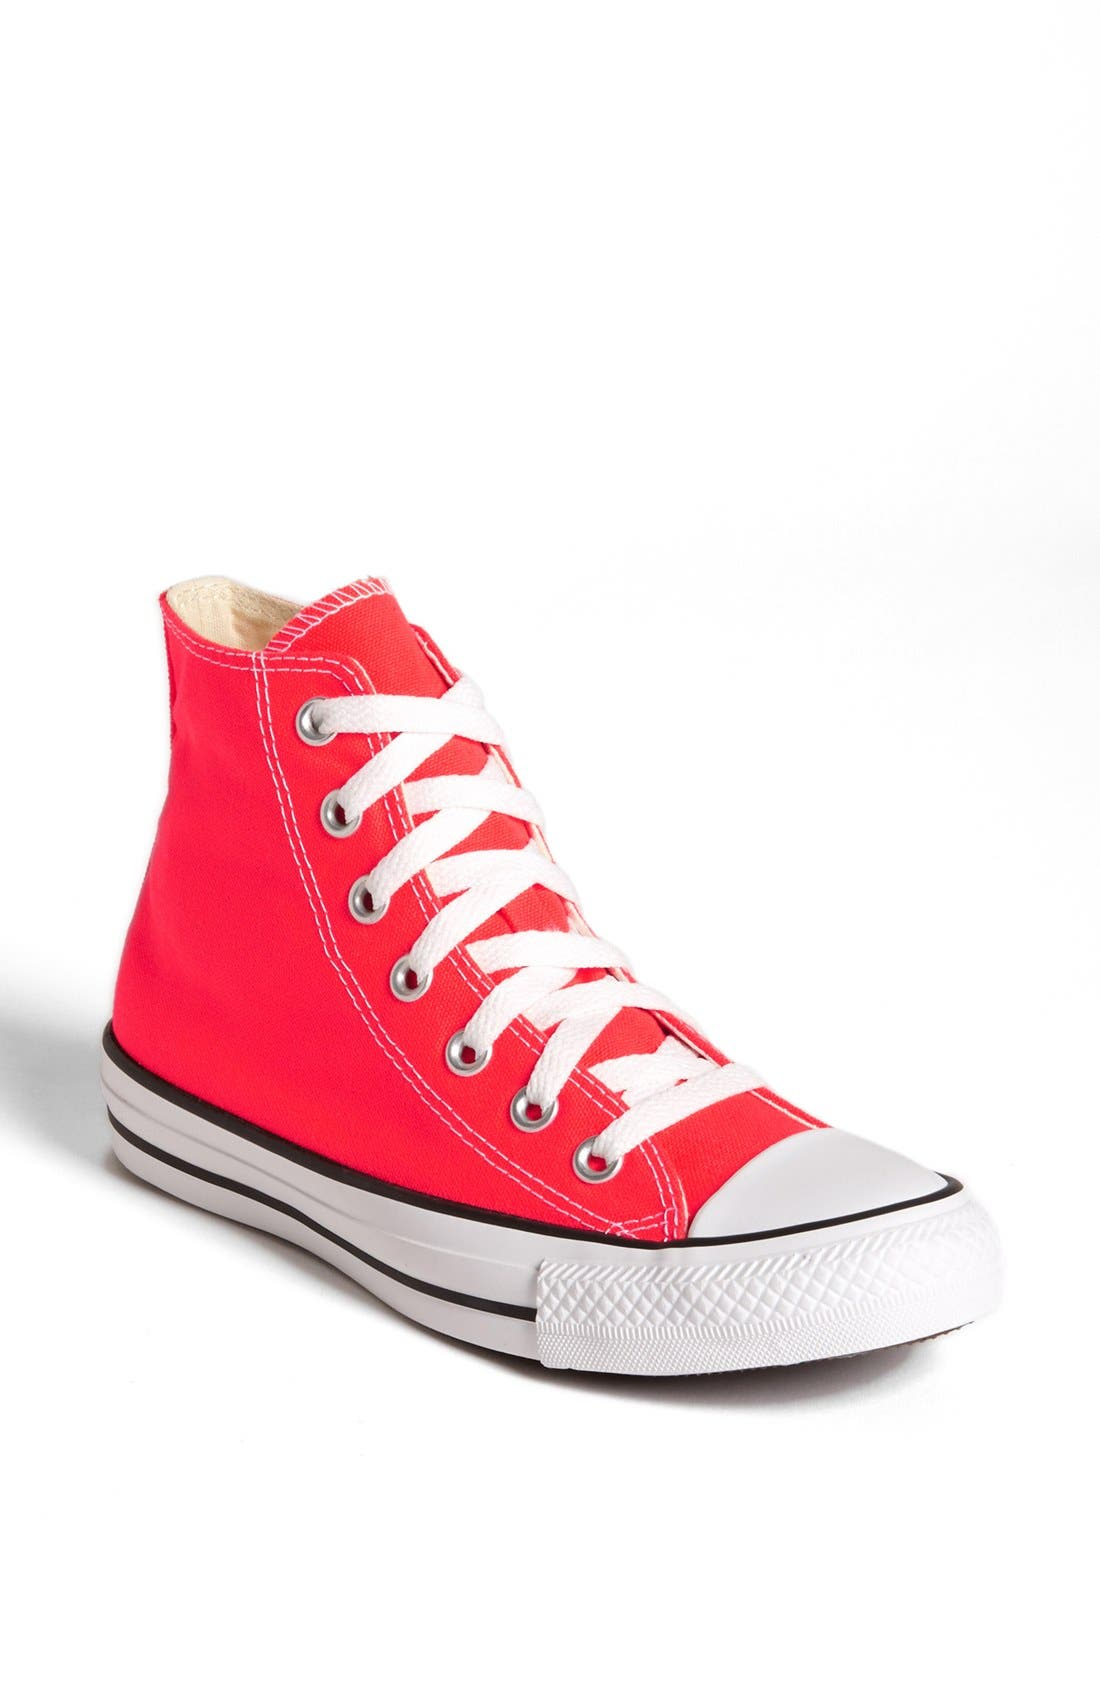 Main Image - Converse Chuck Taylor® All Star® 'Fiery Coral' High Top Sneaker (Women)